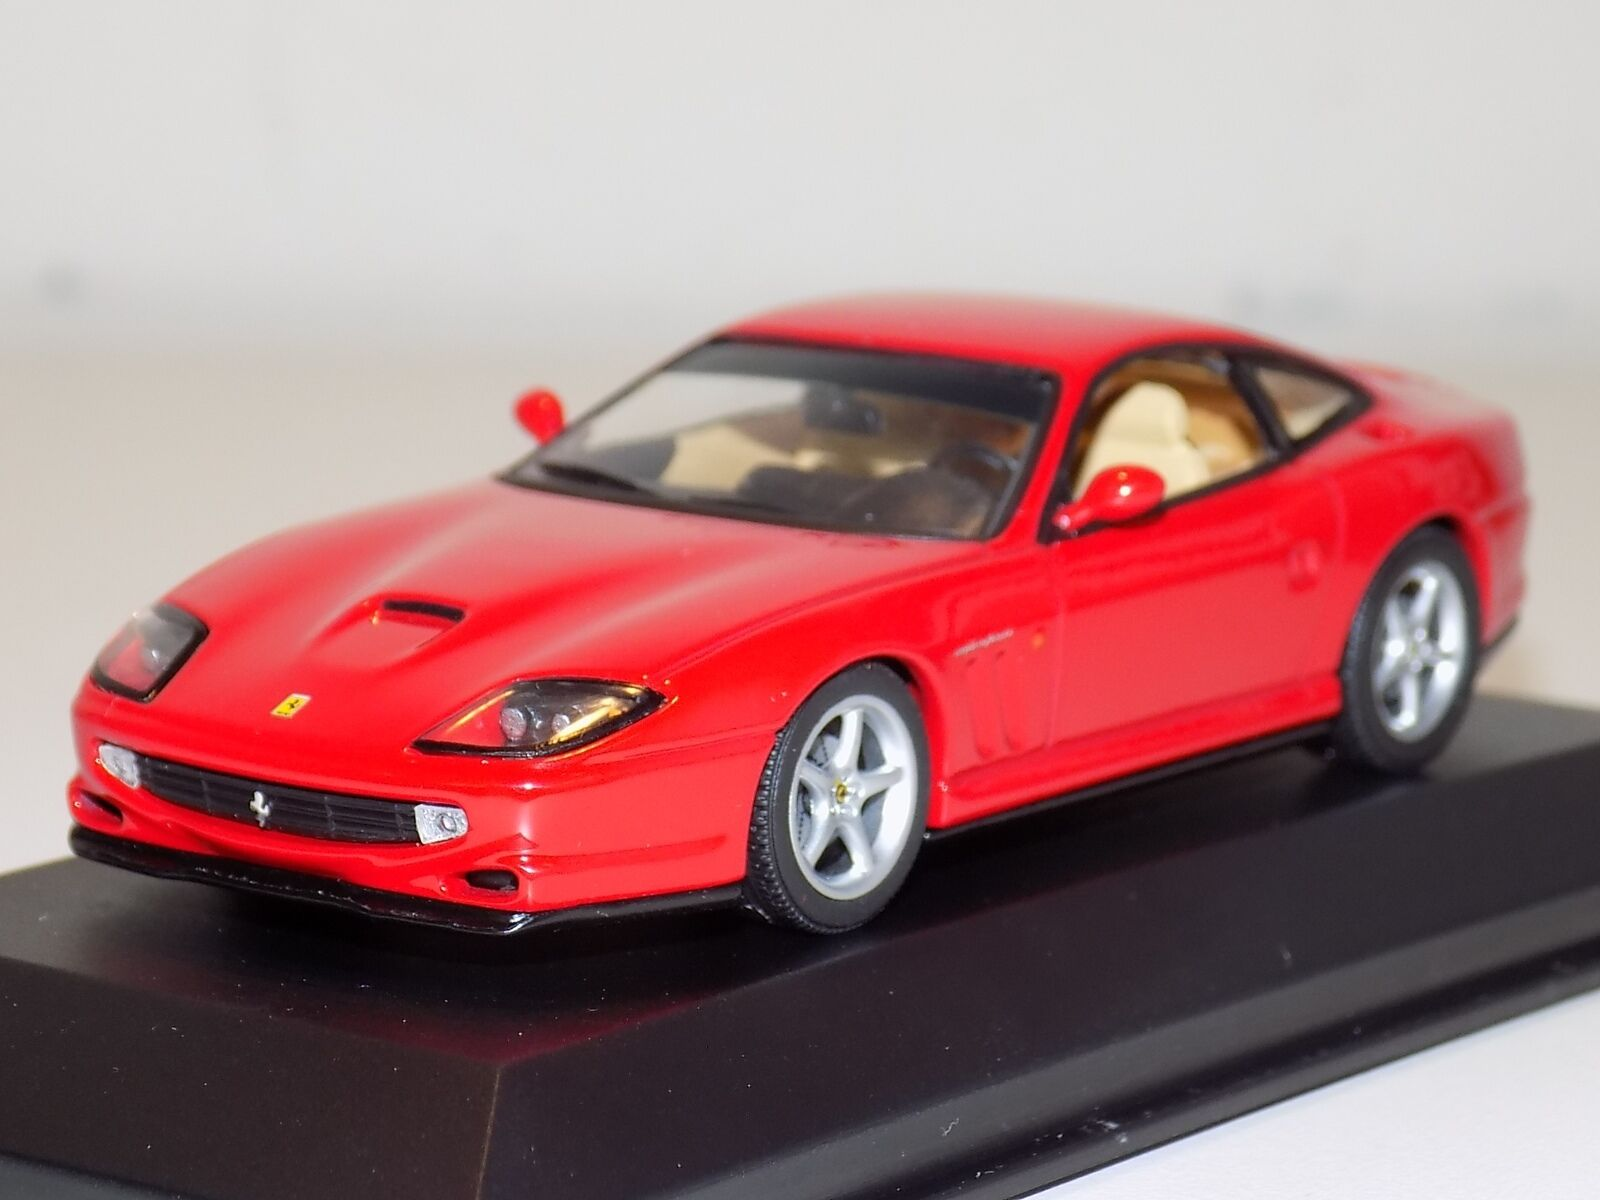 1 43 Minichamps Street Ferrari 550 Maranello 1996 in Red 430 076020